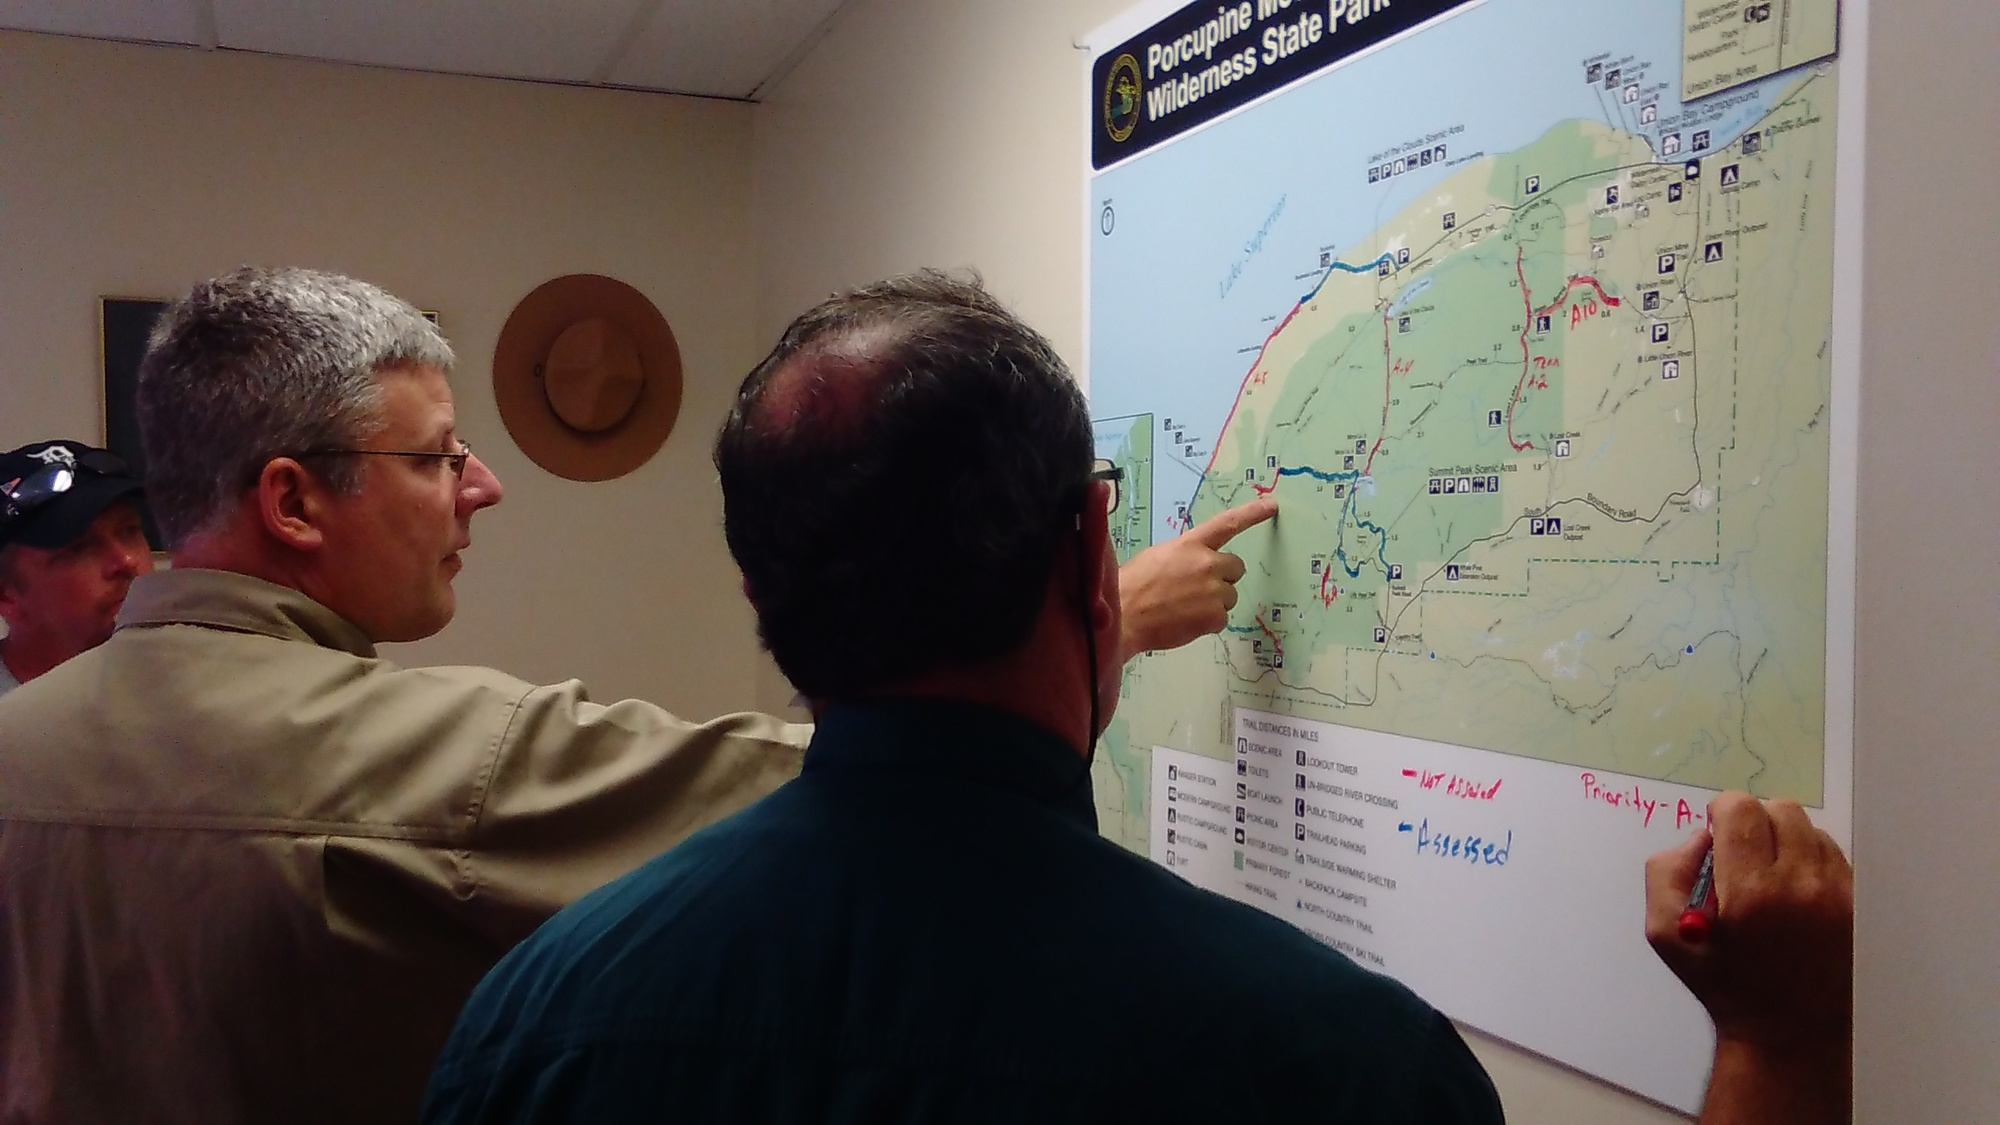 Members of the incident command team look over a progress map at Porcupine Mountains Wilderness State Park.